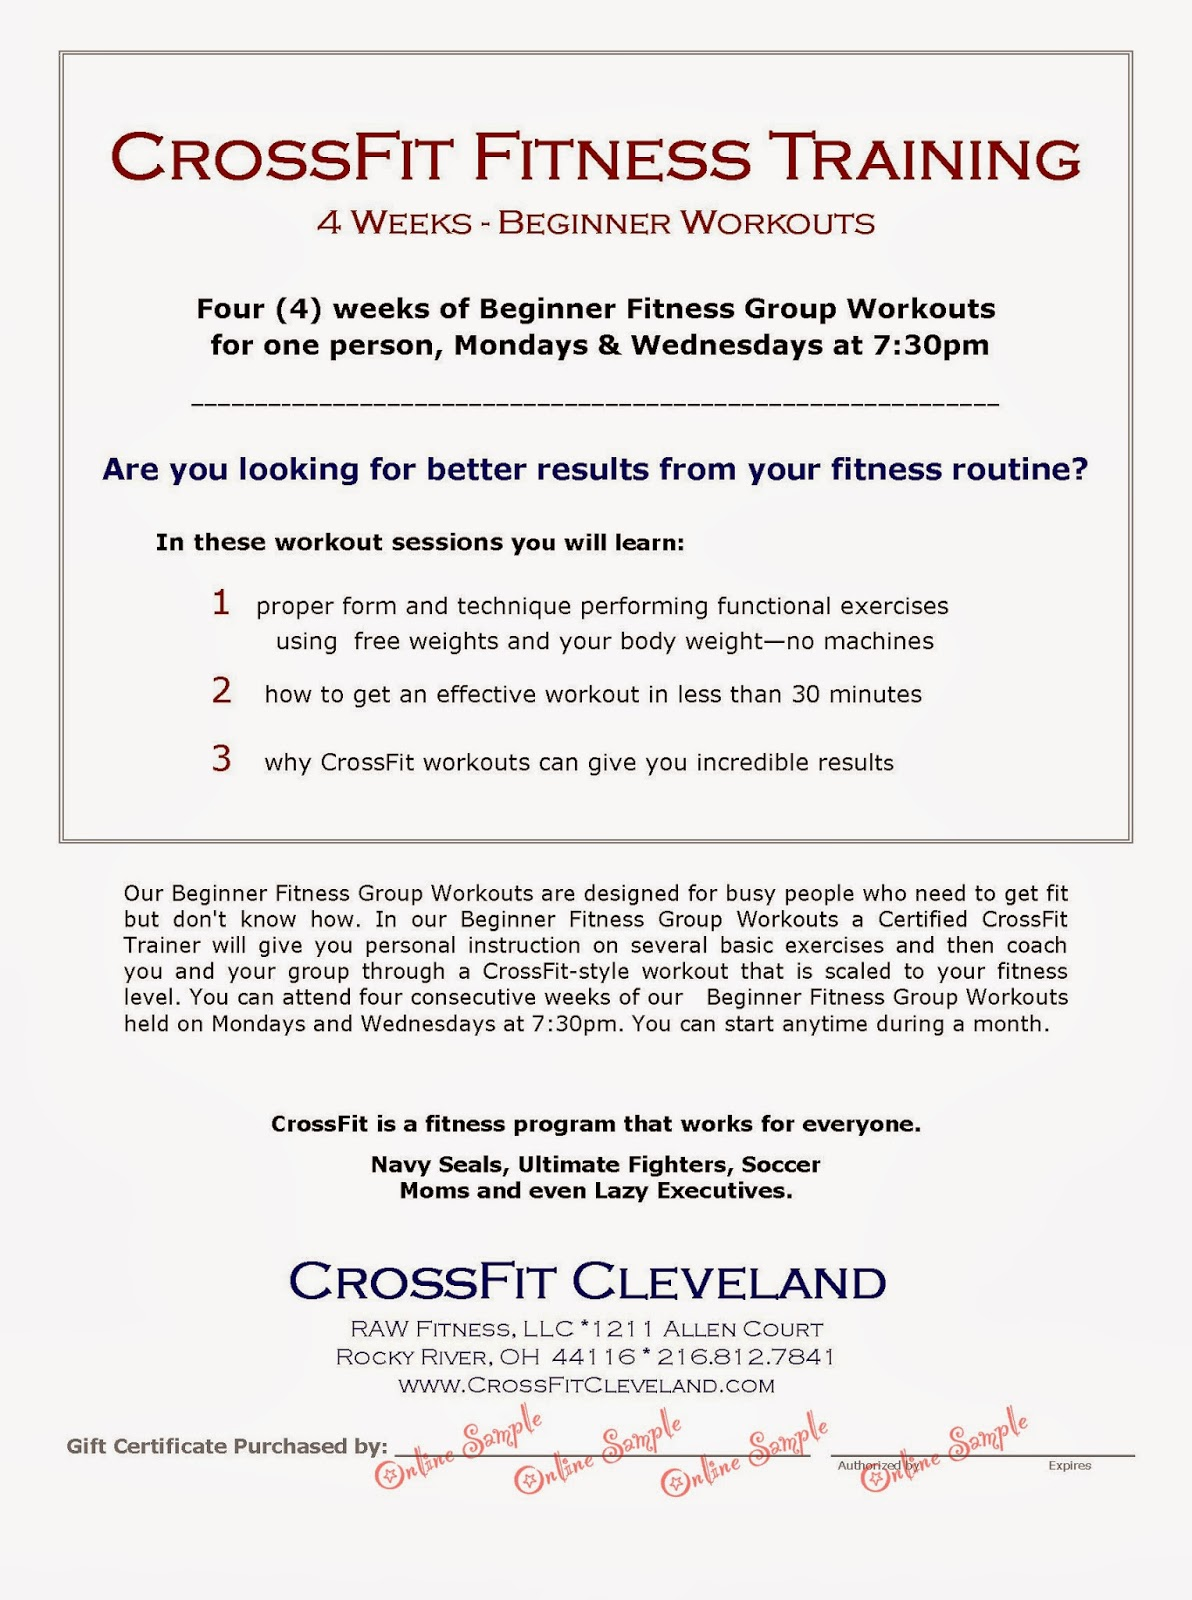 Crossfit Cleveland 2014